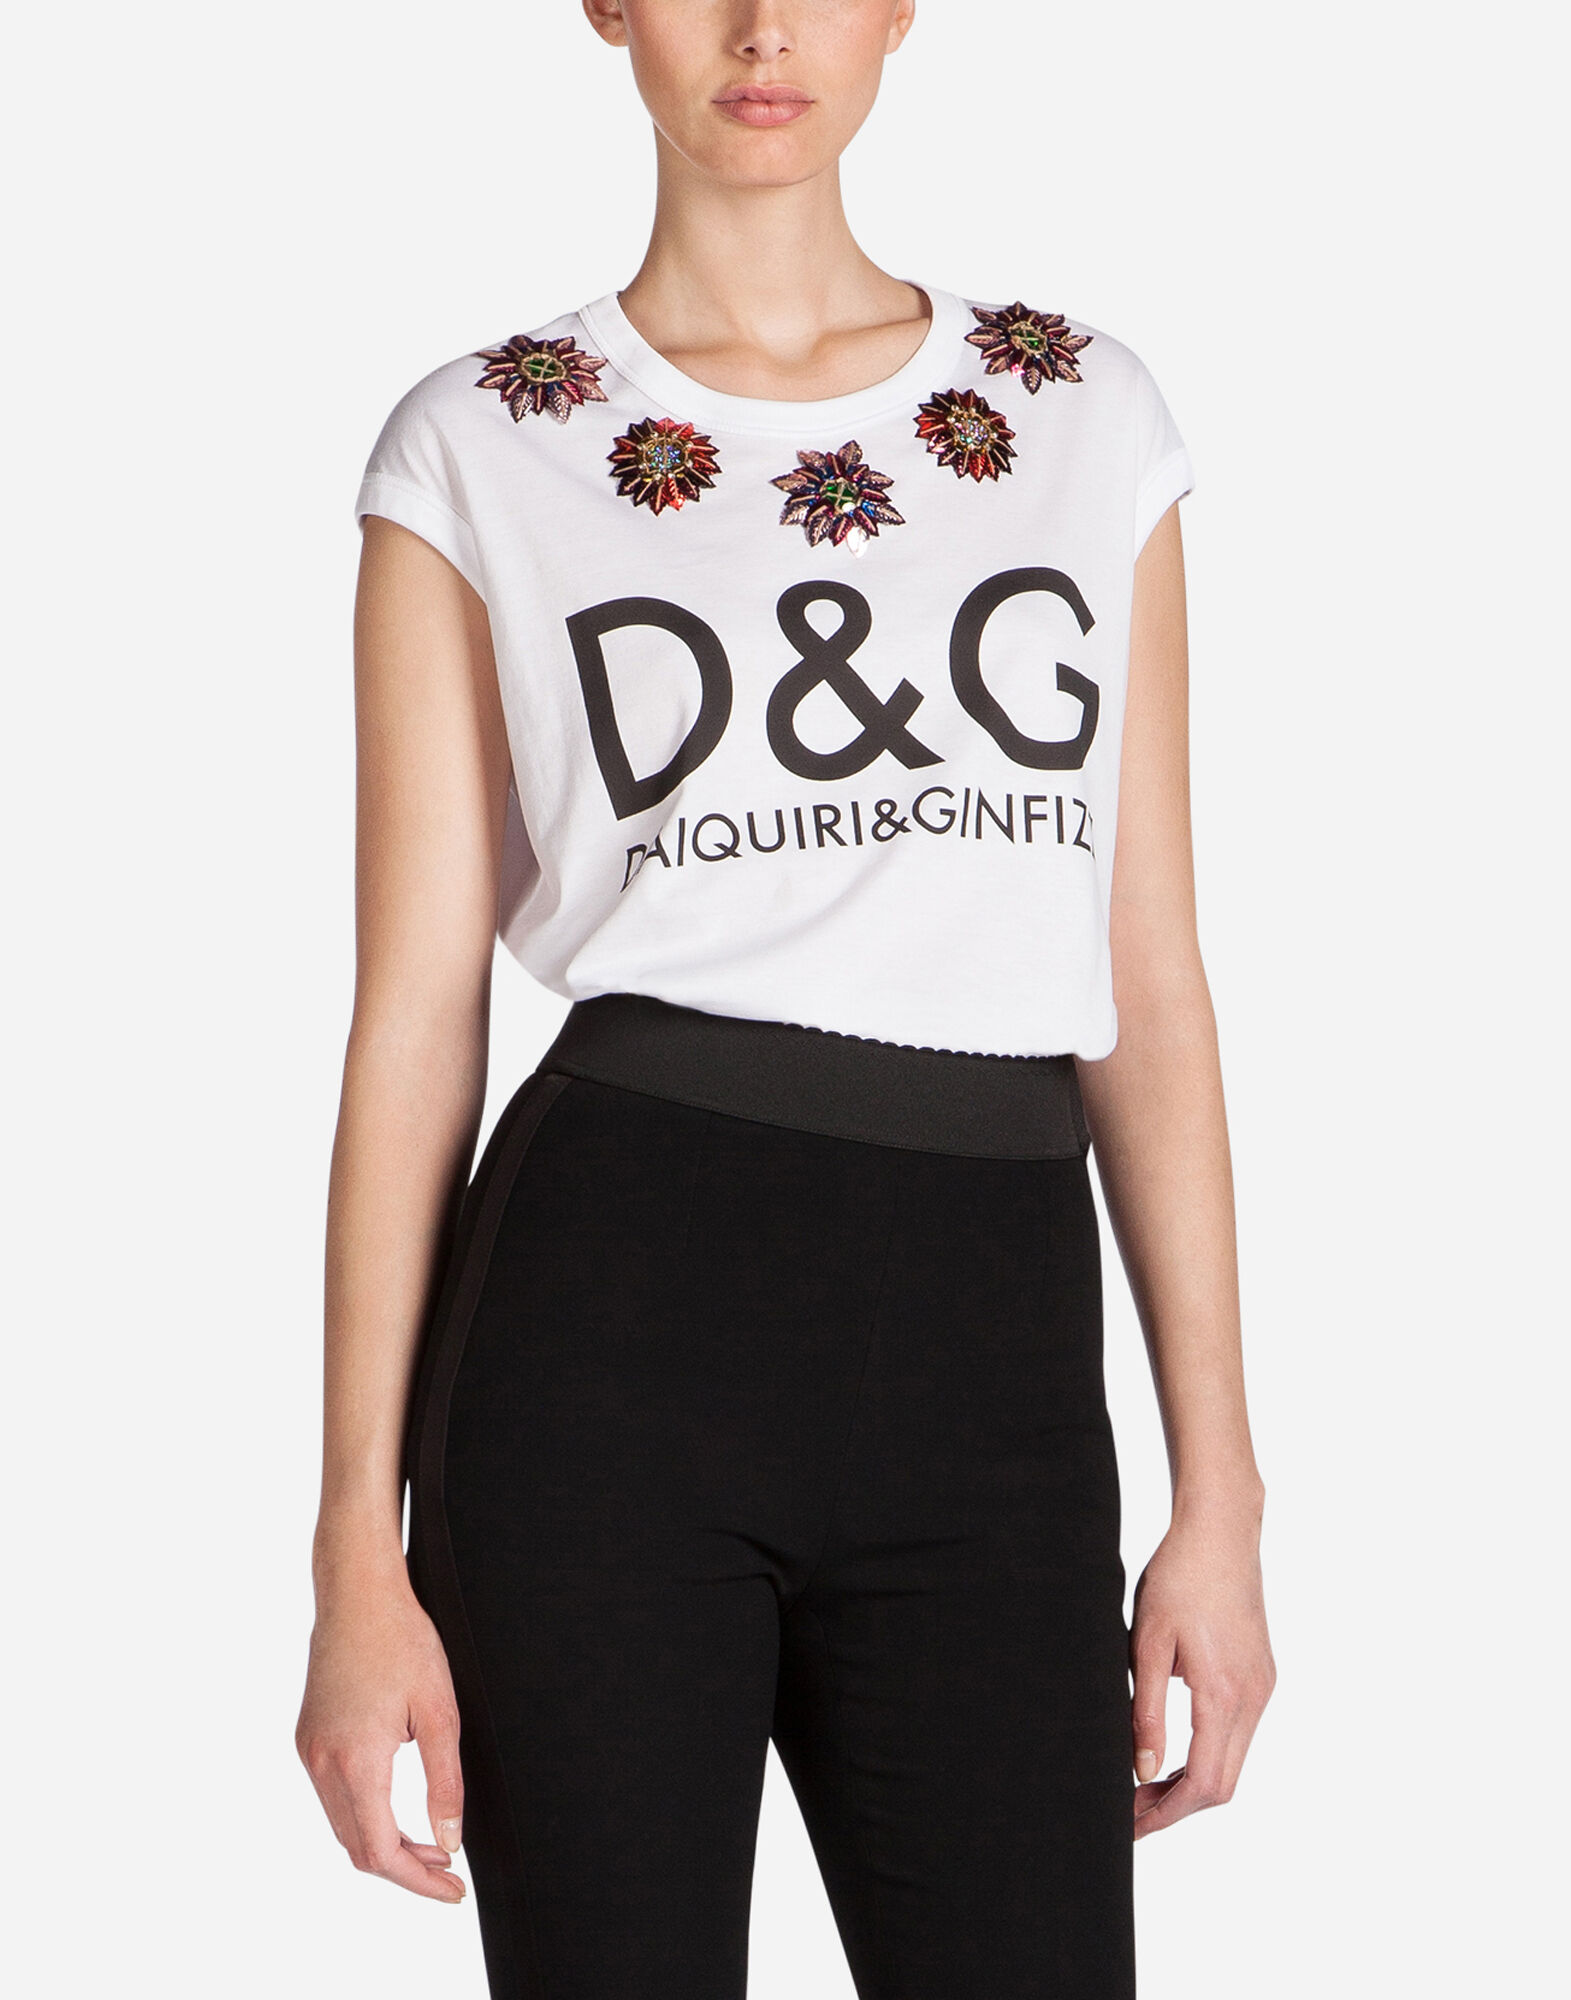 women 39 s t shirts and tops dolce gabbana t shirt with print dolce gabbana. Black Bedroom Furniture Sets. Home Design Ideas